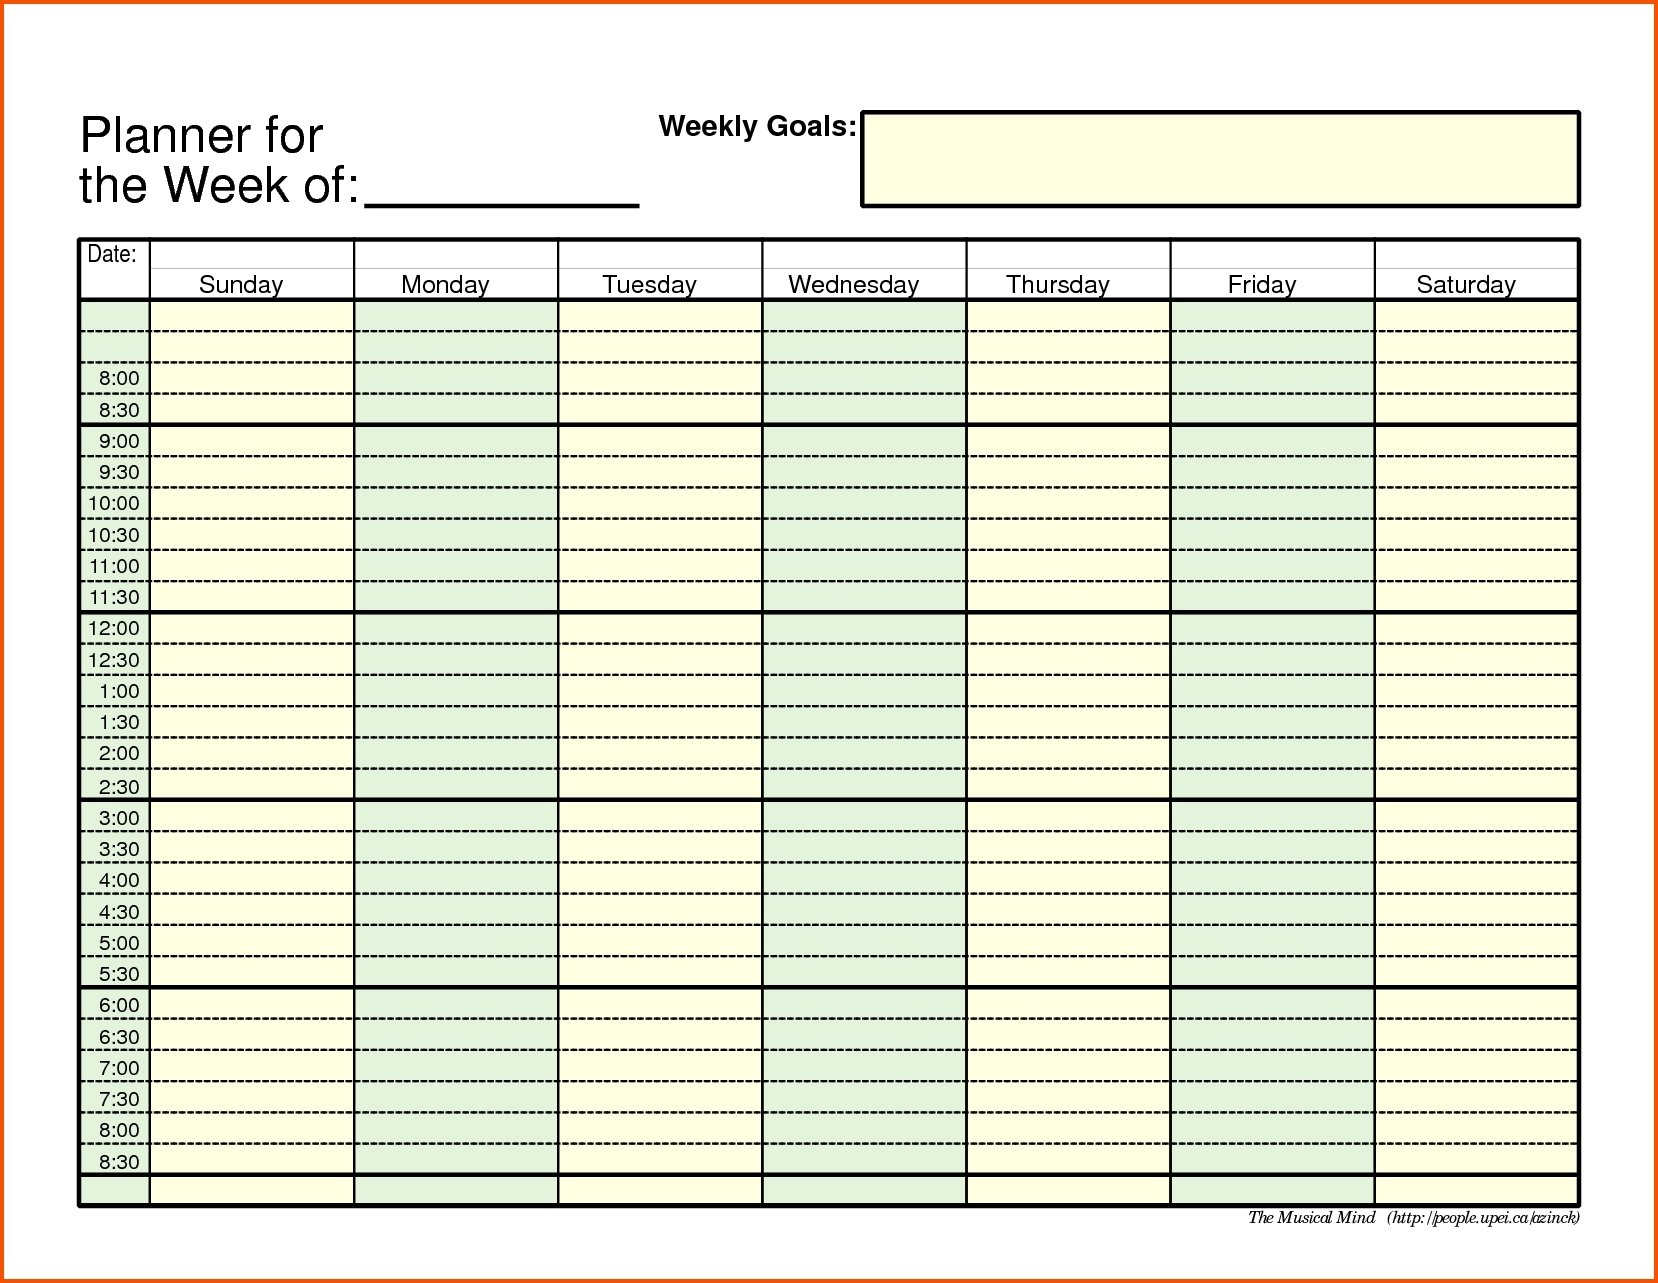 Weekly Schedule With Time Slots - Calendar Inspiration Design Weekly Printable Calendar With Time Slots Free